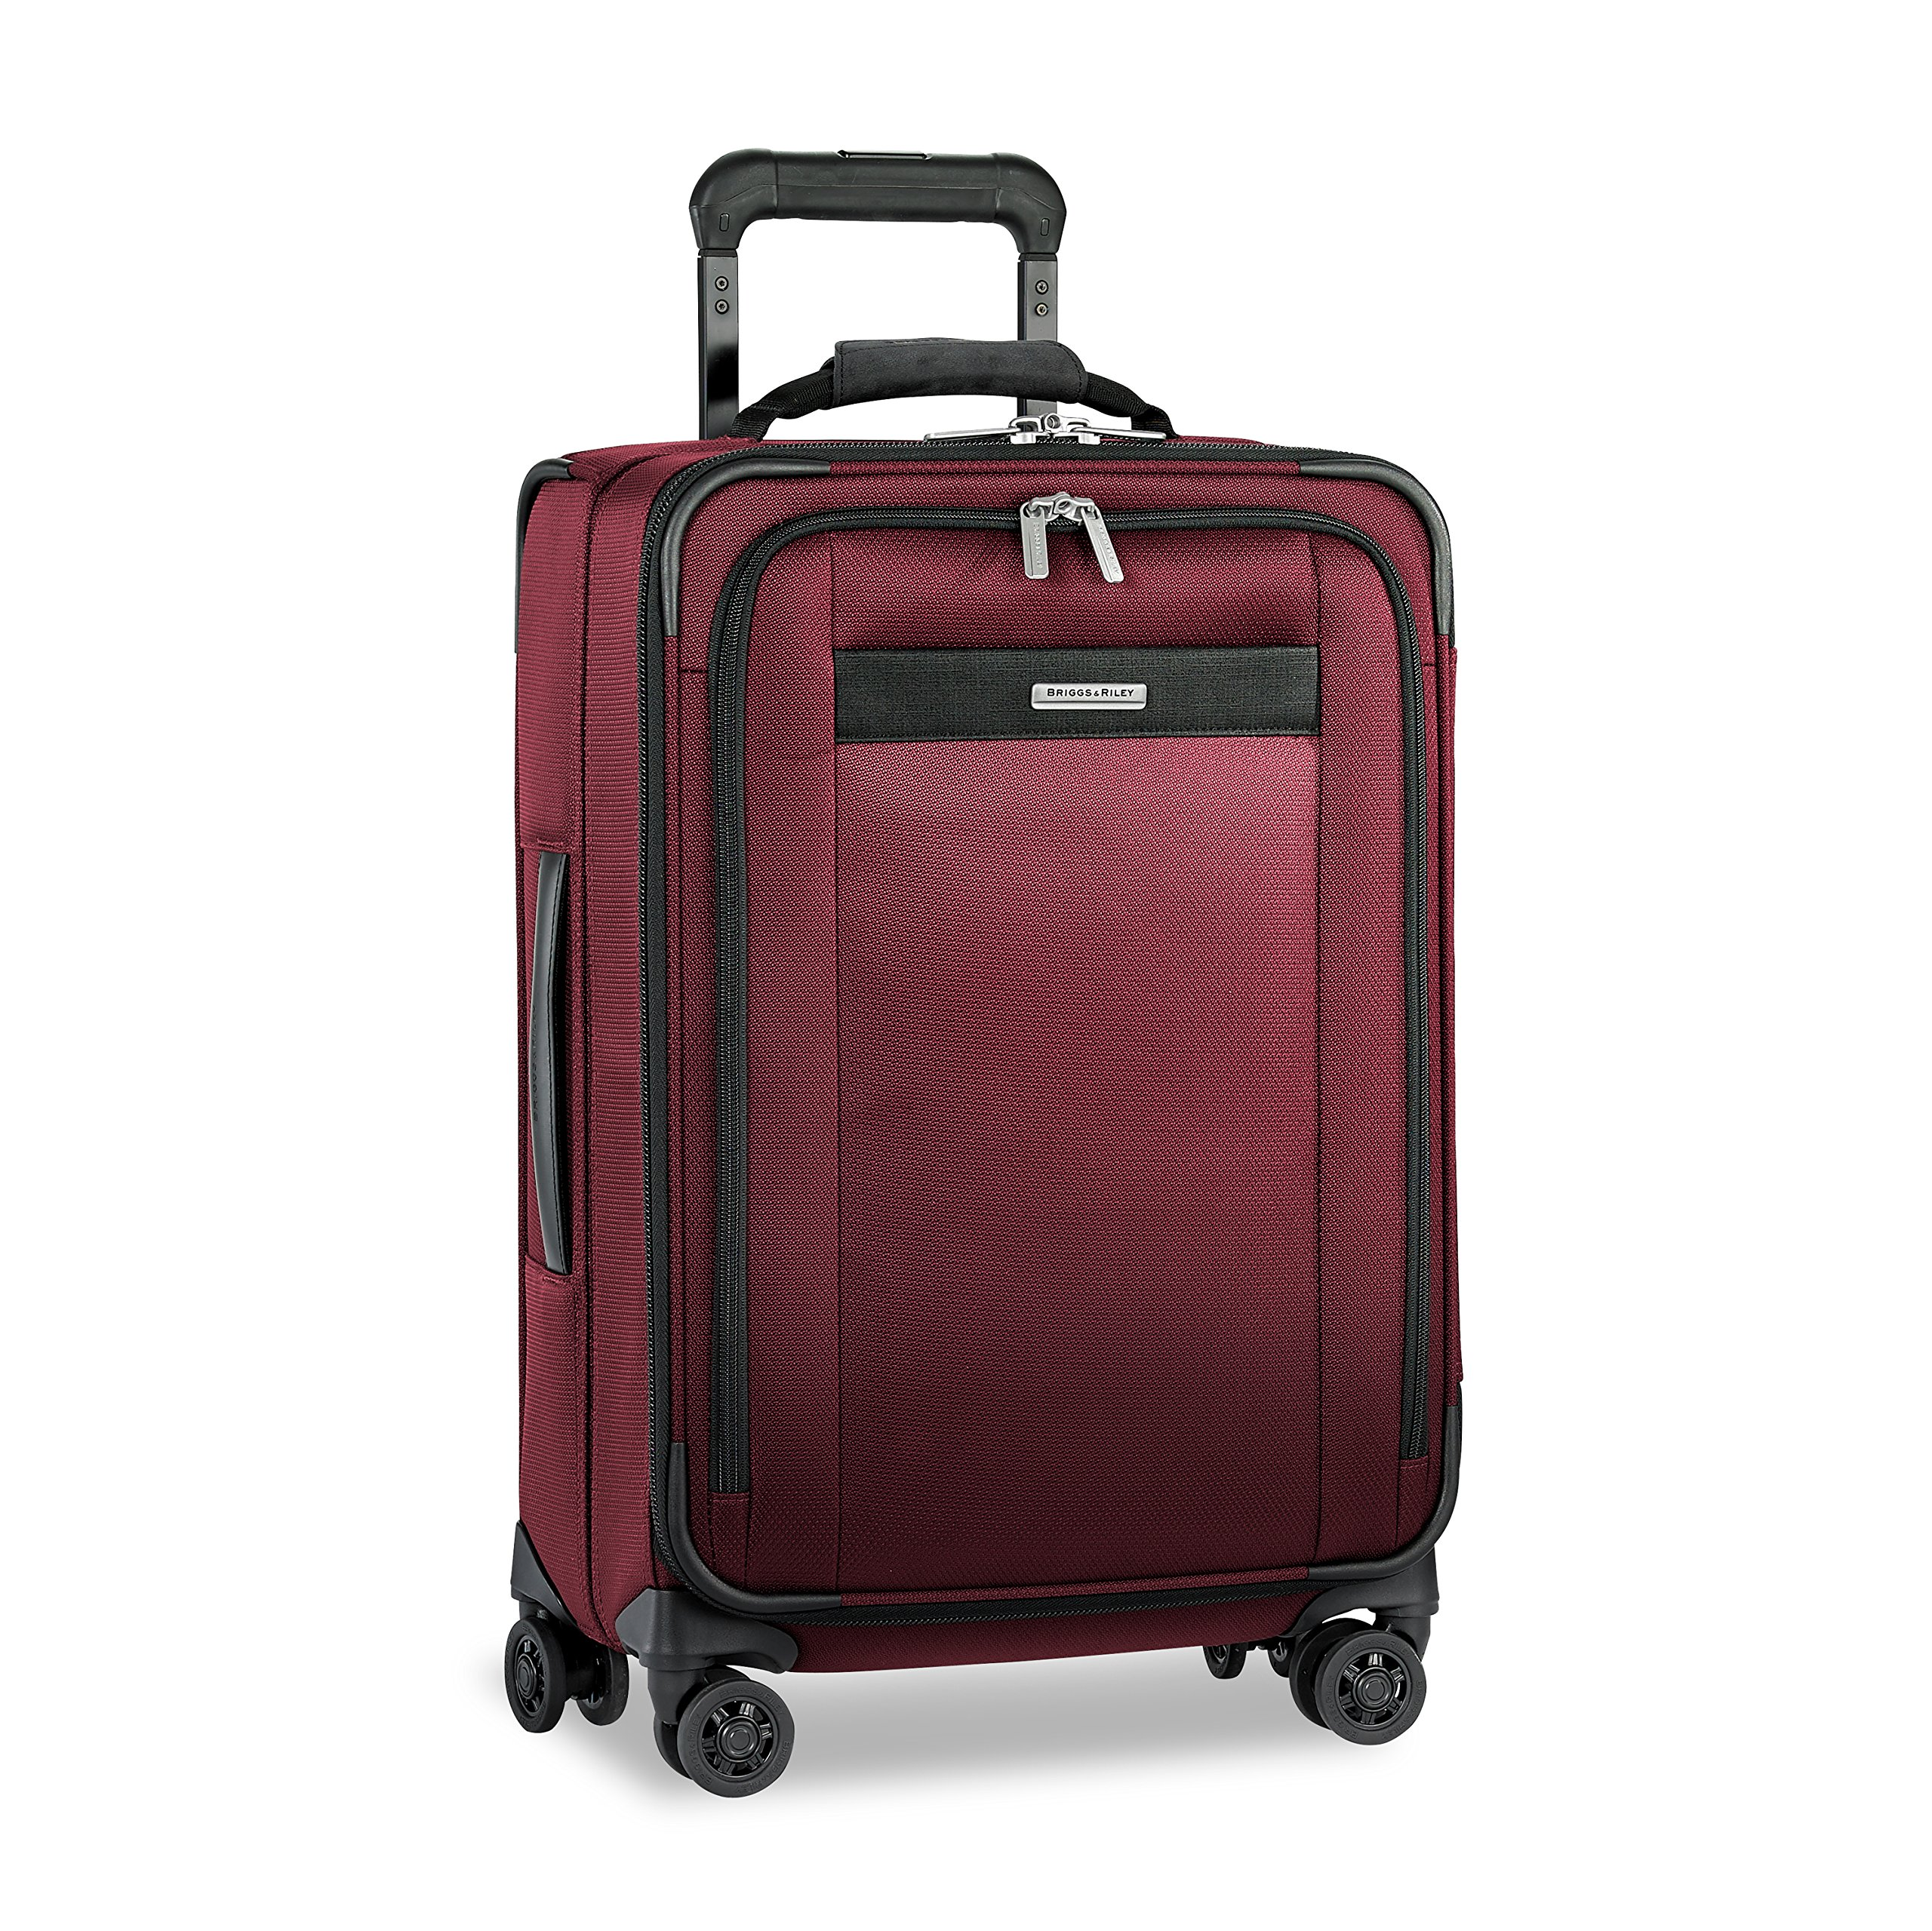 Briggs & Riley Transcend Tall Carry-on Expandable Spinner, Merlot